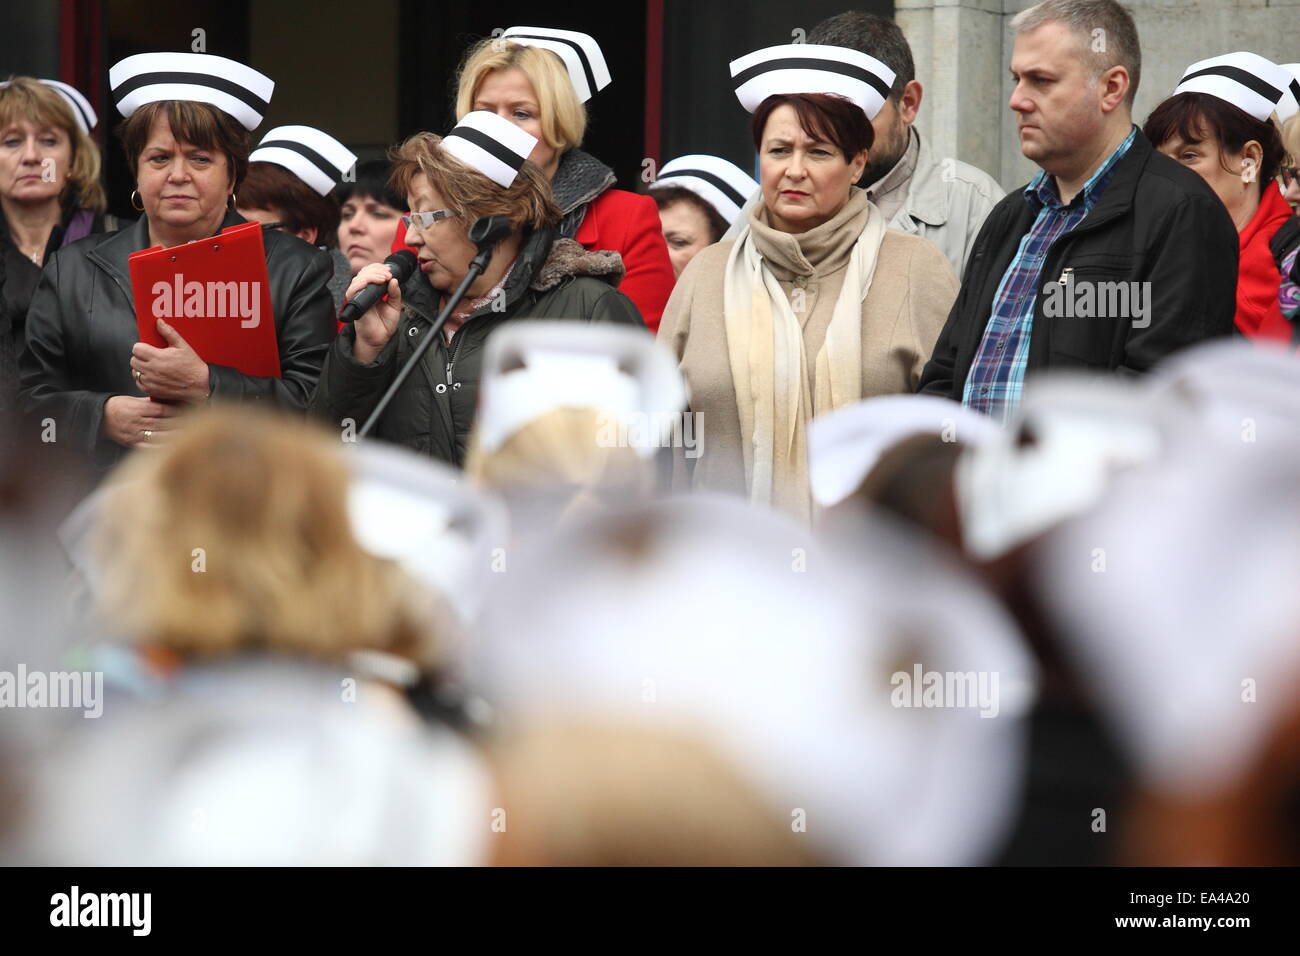 Gdansk, Poland. 6th November, 2014. Nurses and midwives protest  in front of the Pomeranian Marshal Office in Gdansk. - Stock Image